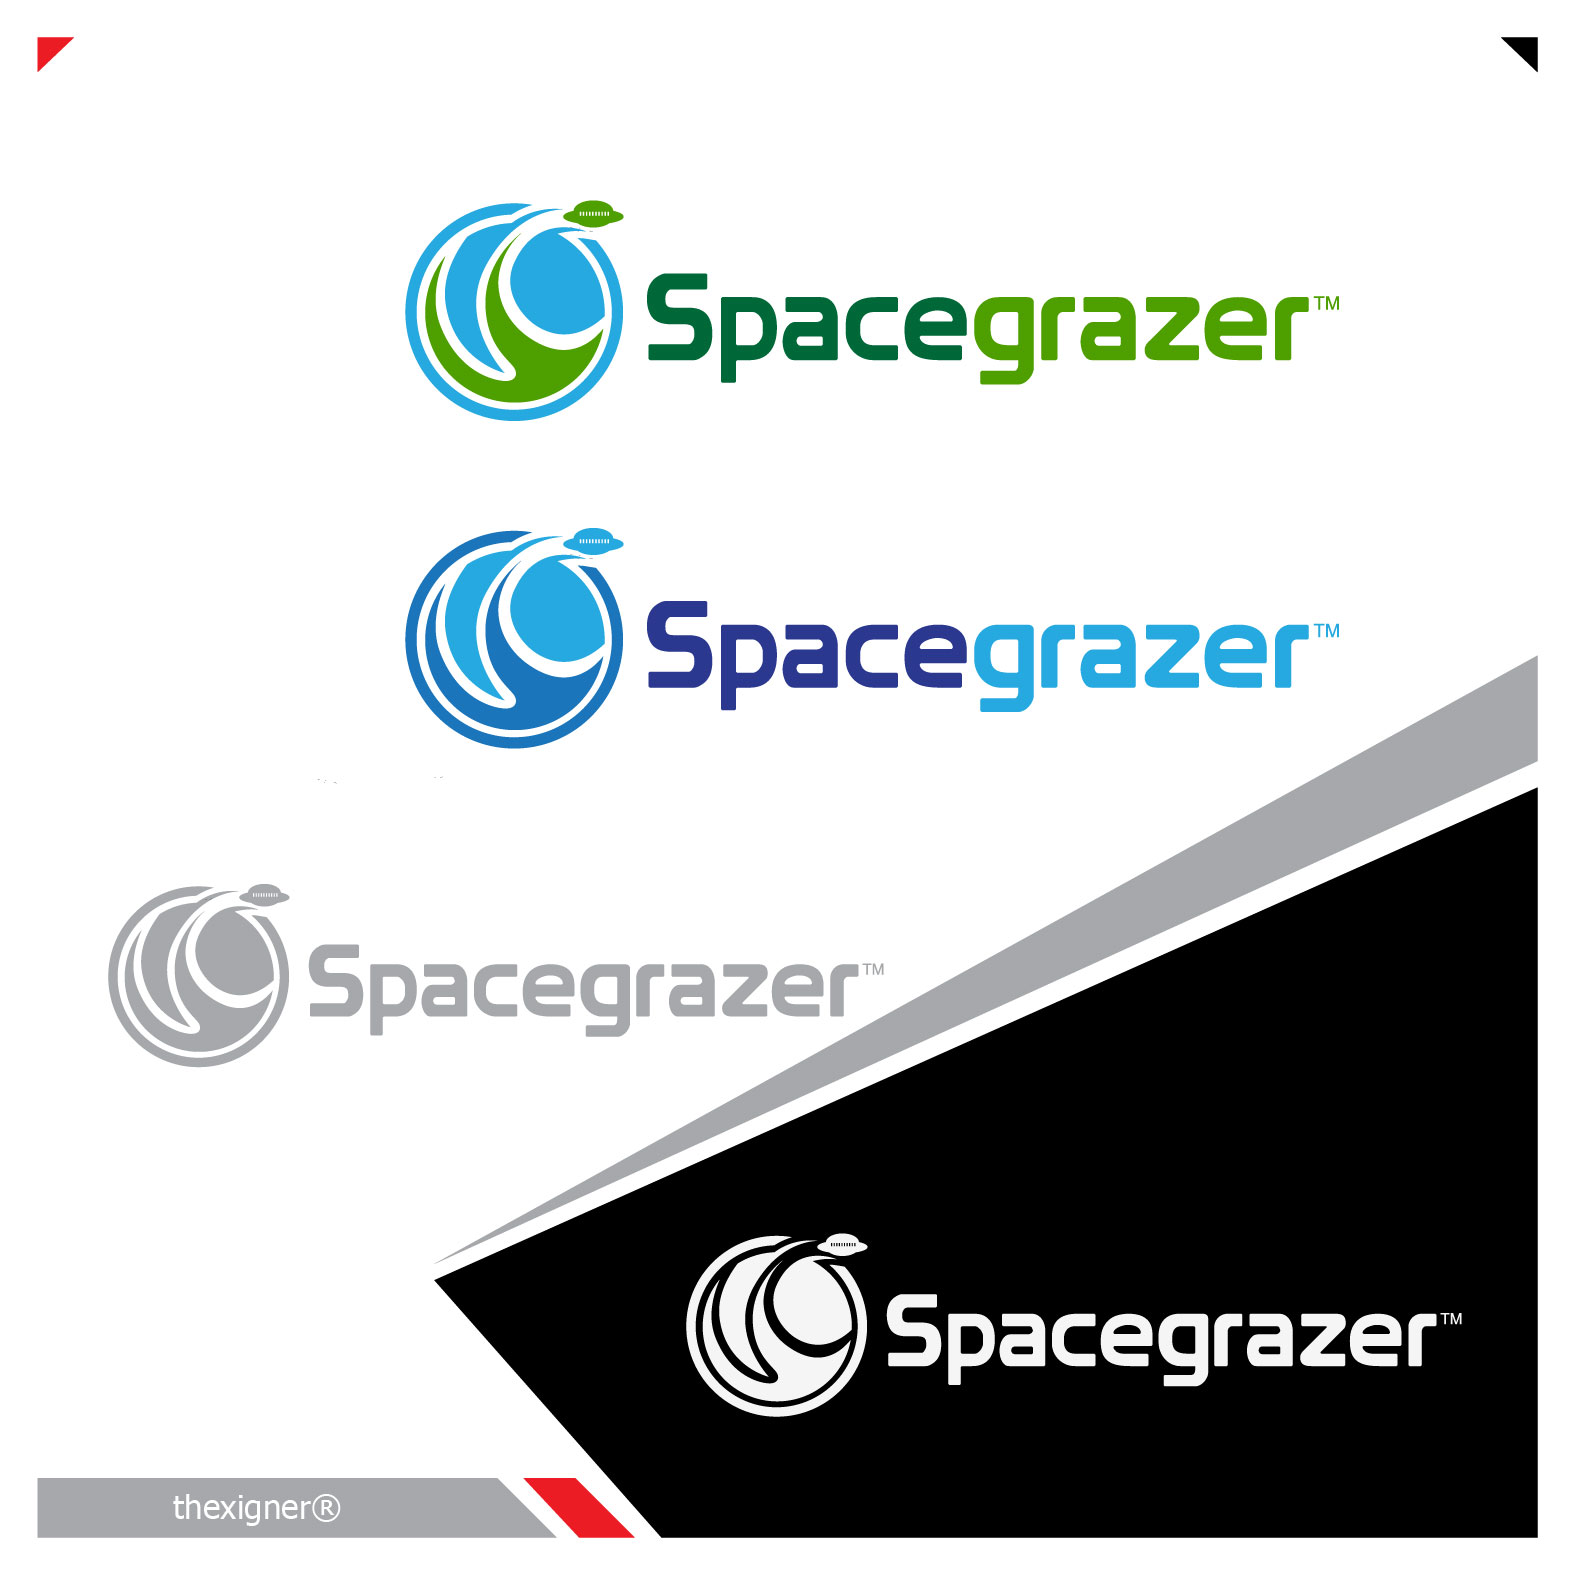 Logo Design by lagalag - Entry No. 153 in the Logo Design Contest Fun Logo Design for Spacegrazer.